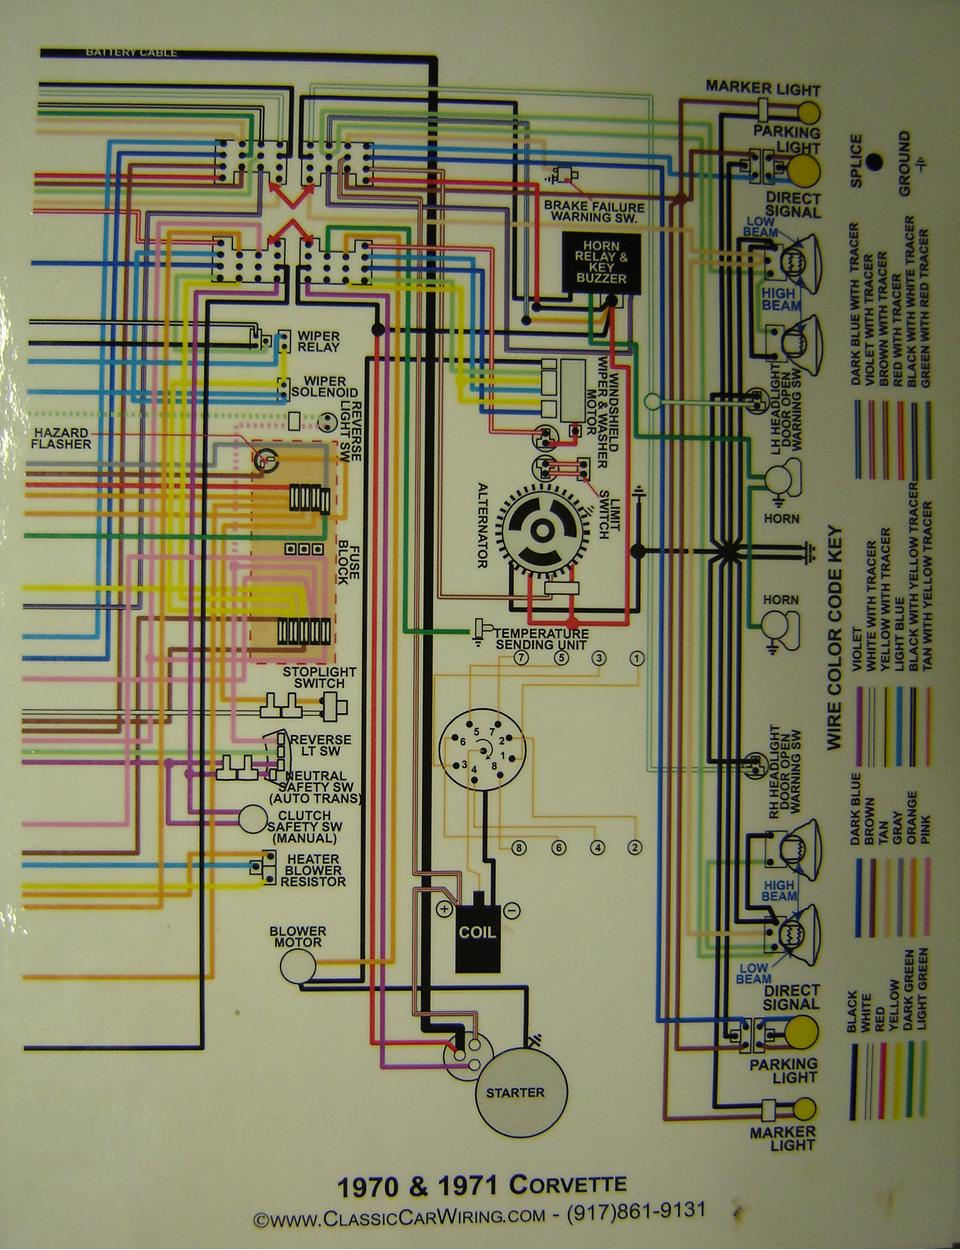 1970 71 corvette color wiring diagram B chevy diagrams 1970 corvette wiring diagram at honlapkeszites.co